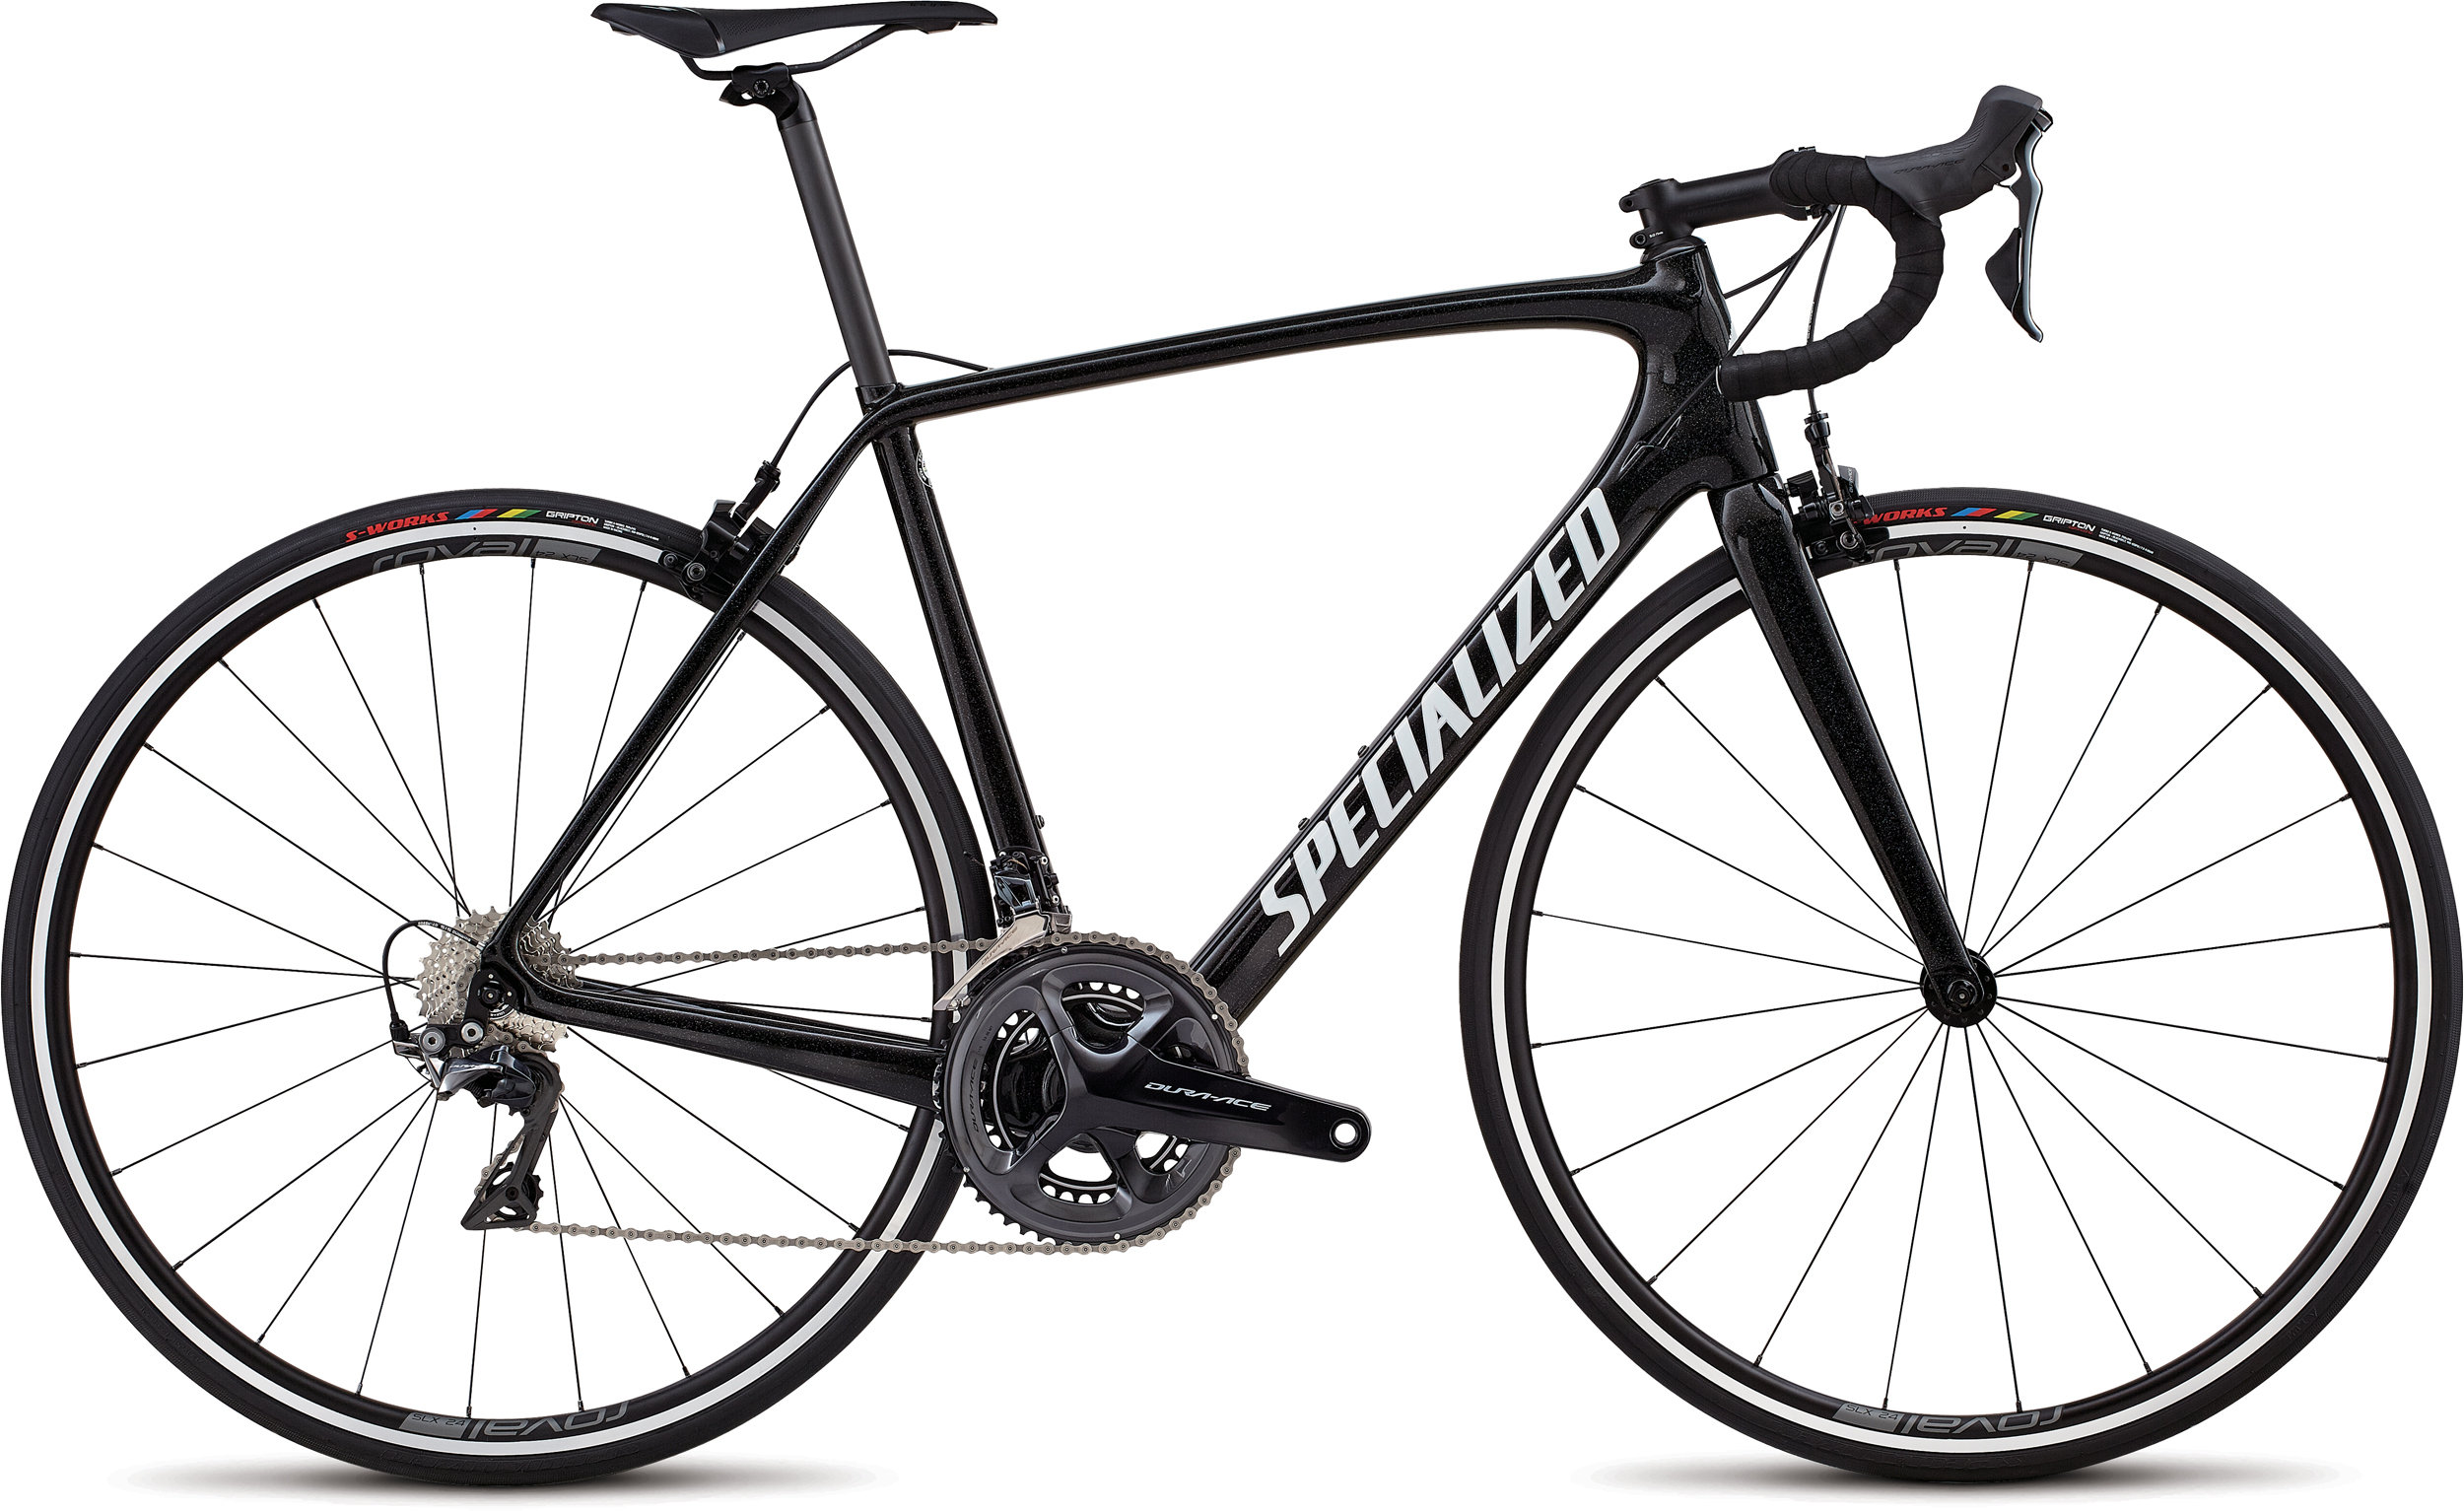 Specialized Men´s Tarmac SL5 Expert DA Cosmic Black/White/Hollogram/Clean 56 - Alpha Bikes